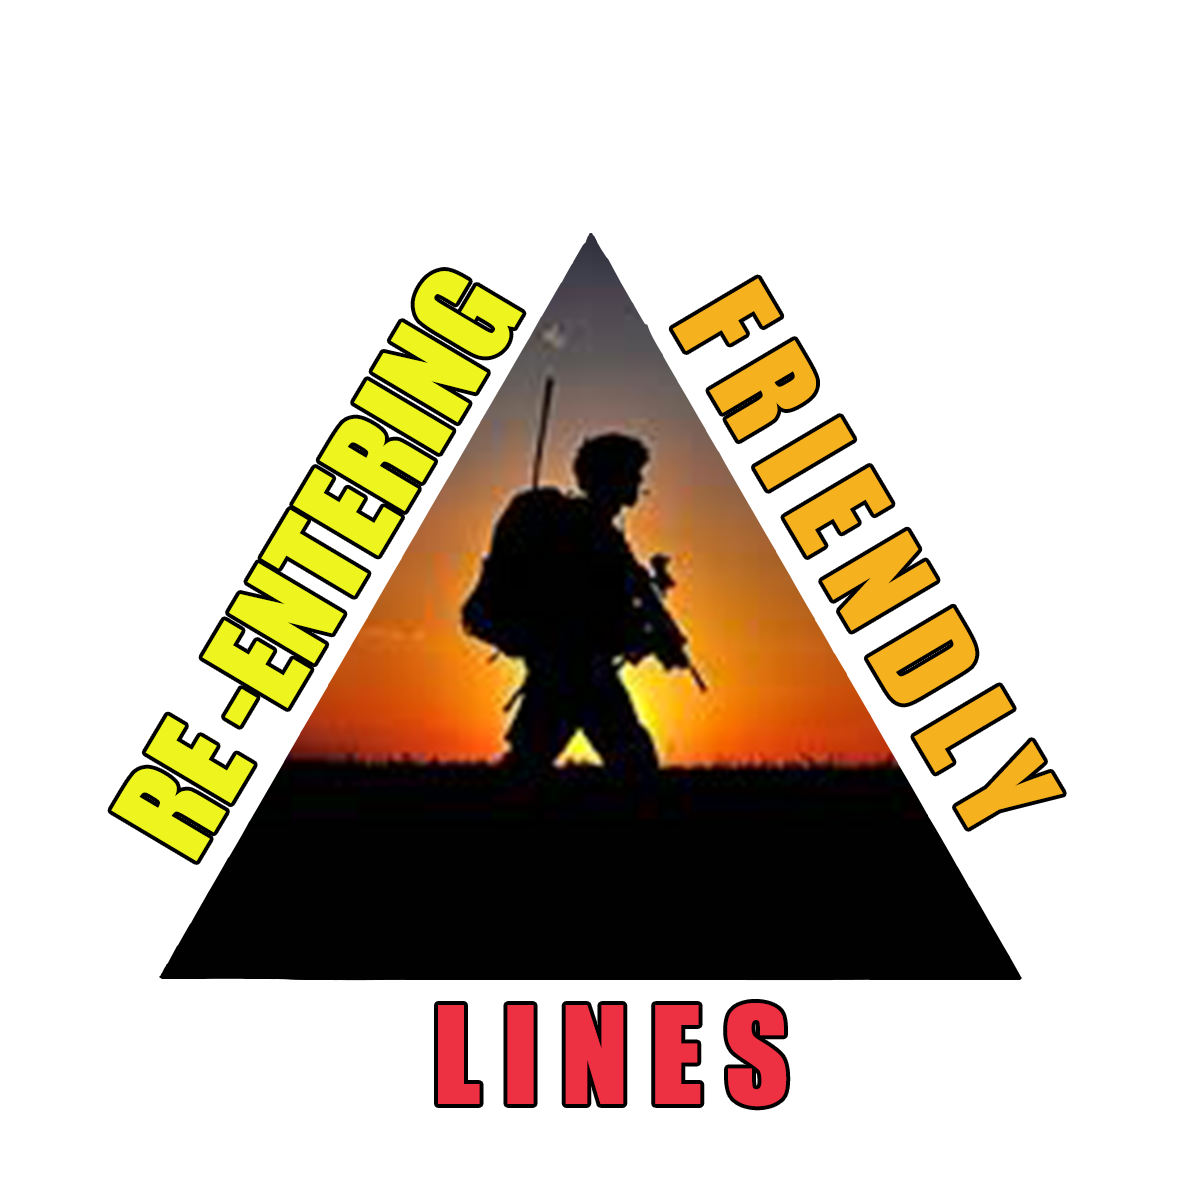 This pathway allows access and opportunities for Veterans and their families, to pursue holistic and homeopathic remedies for mental health, brain injuries, and substance abuse treatments. These remedies are provided by health professionals dedicated to enriching the lives of Veterans and active duty service members.